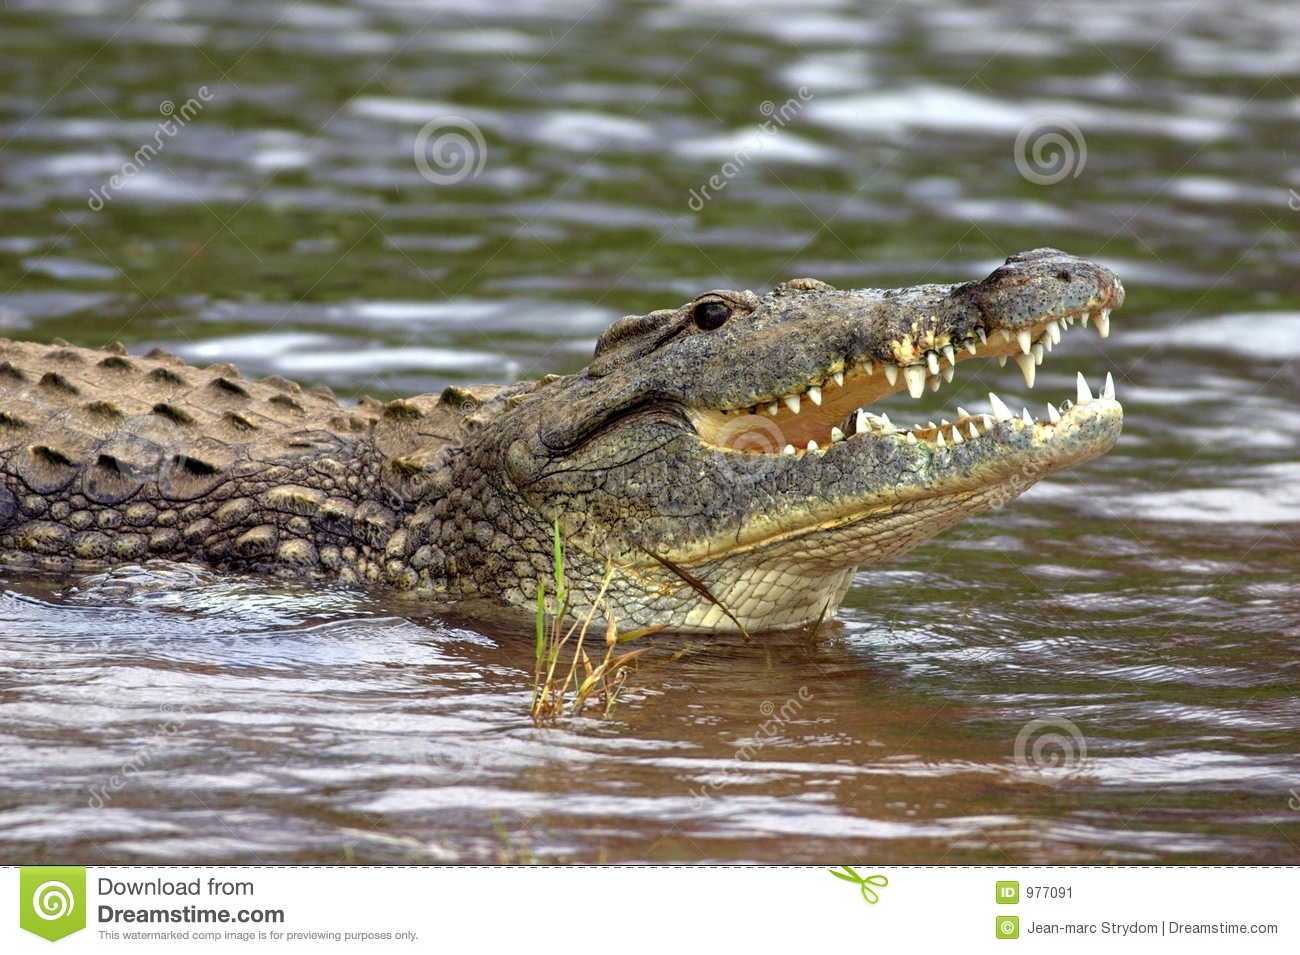 ... Crocodile in the Shingwedzi River, Kruger National Park, South Africa